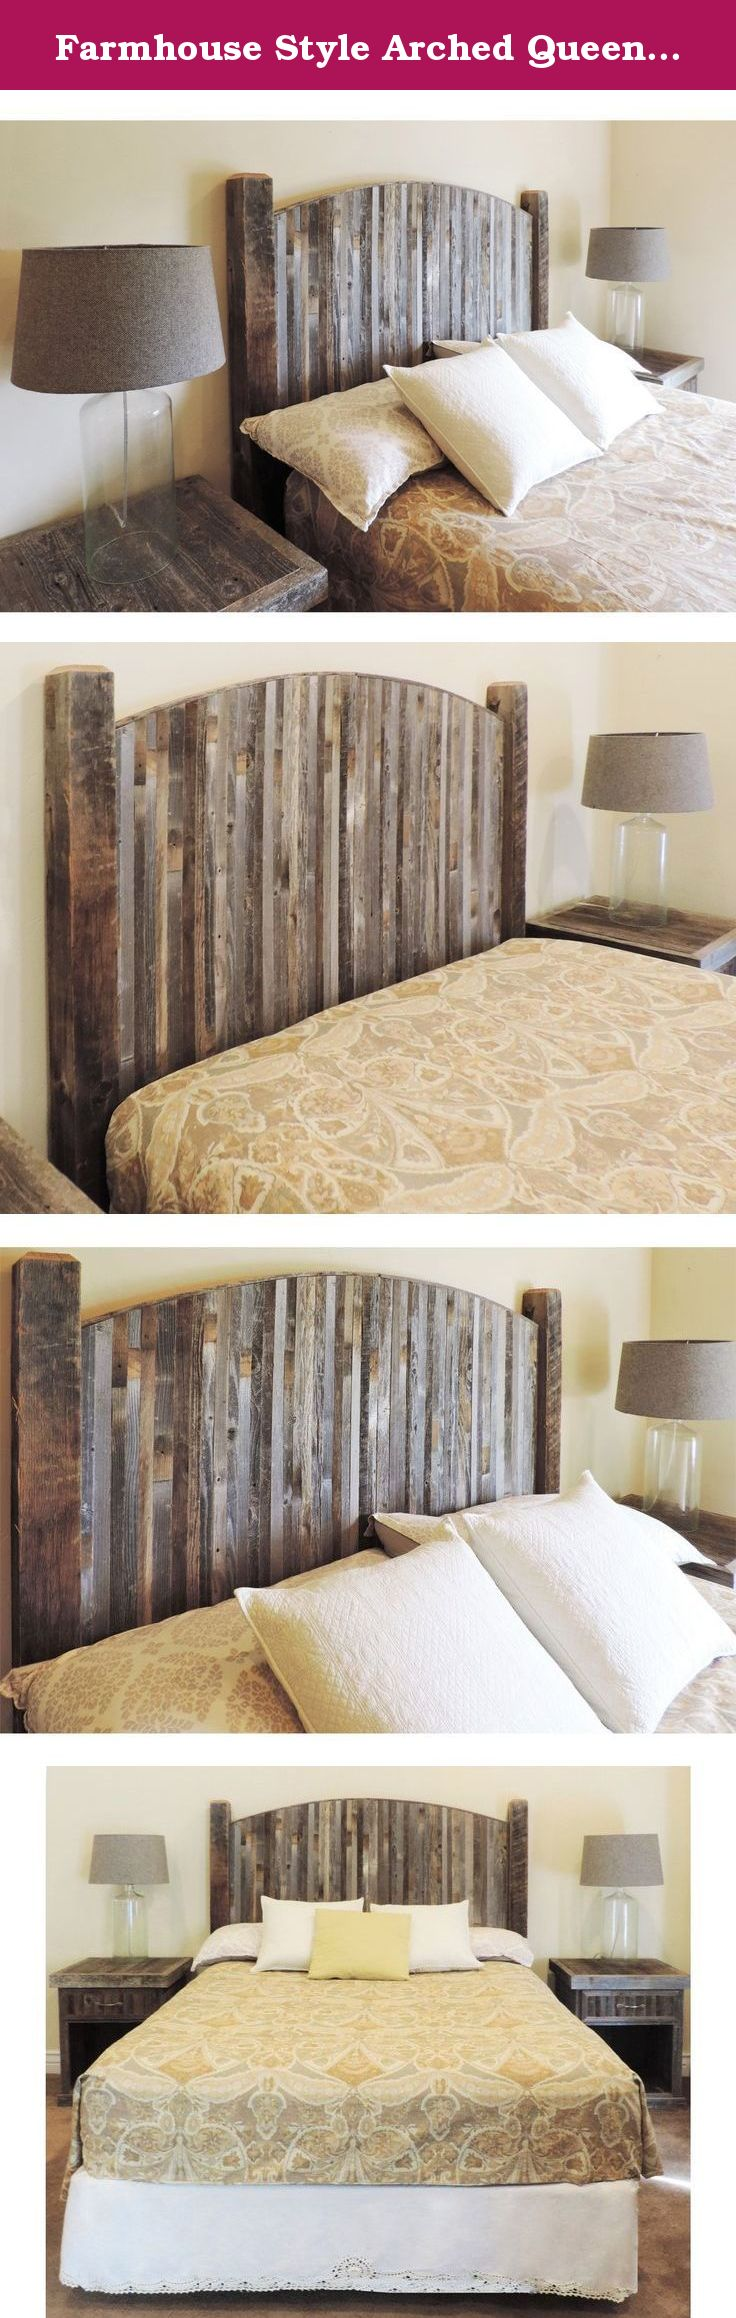 Farmhouse Style Arched Queen Bed Barn Wood Headboard w